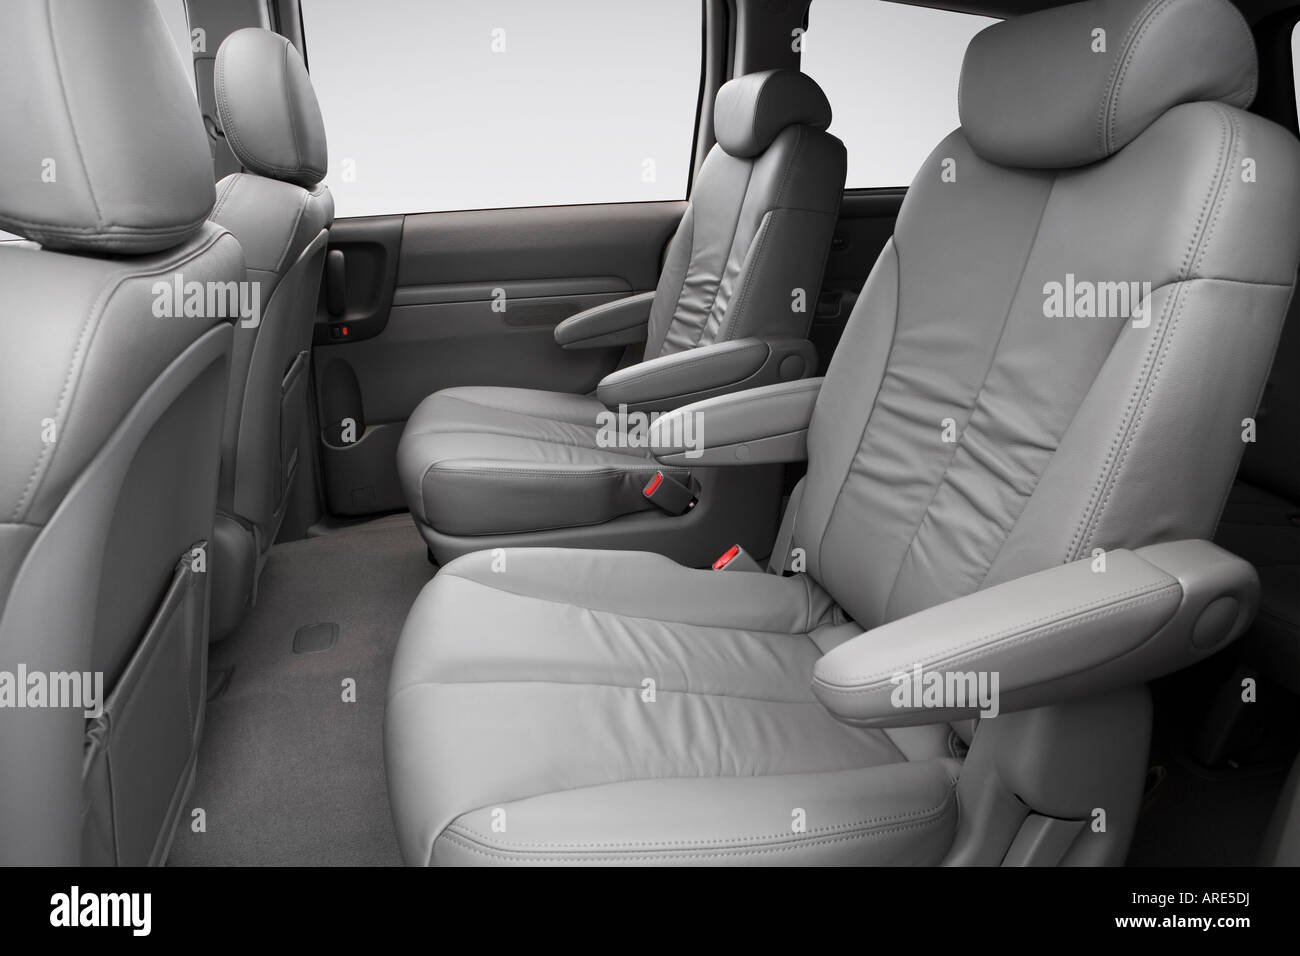 2006 Kia Sedona Ex In Silver Rear Seats Stock Photo 16026797 Alamy